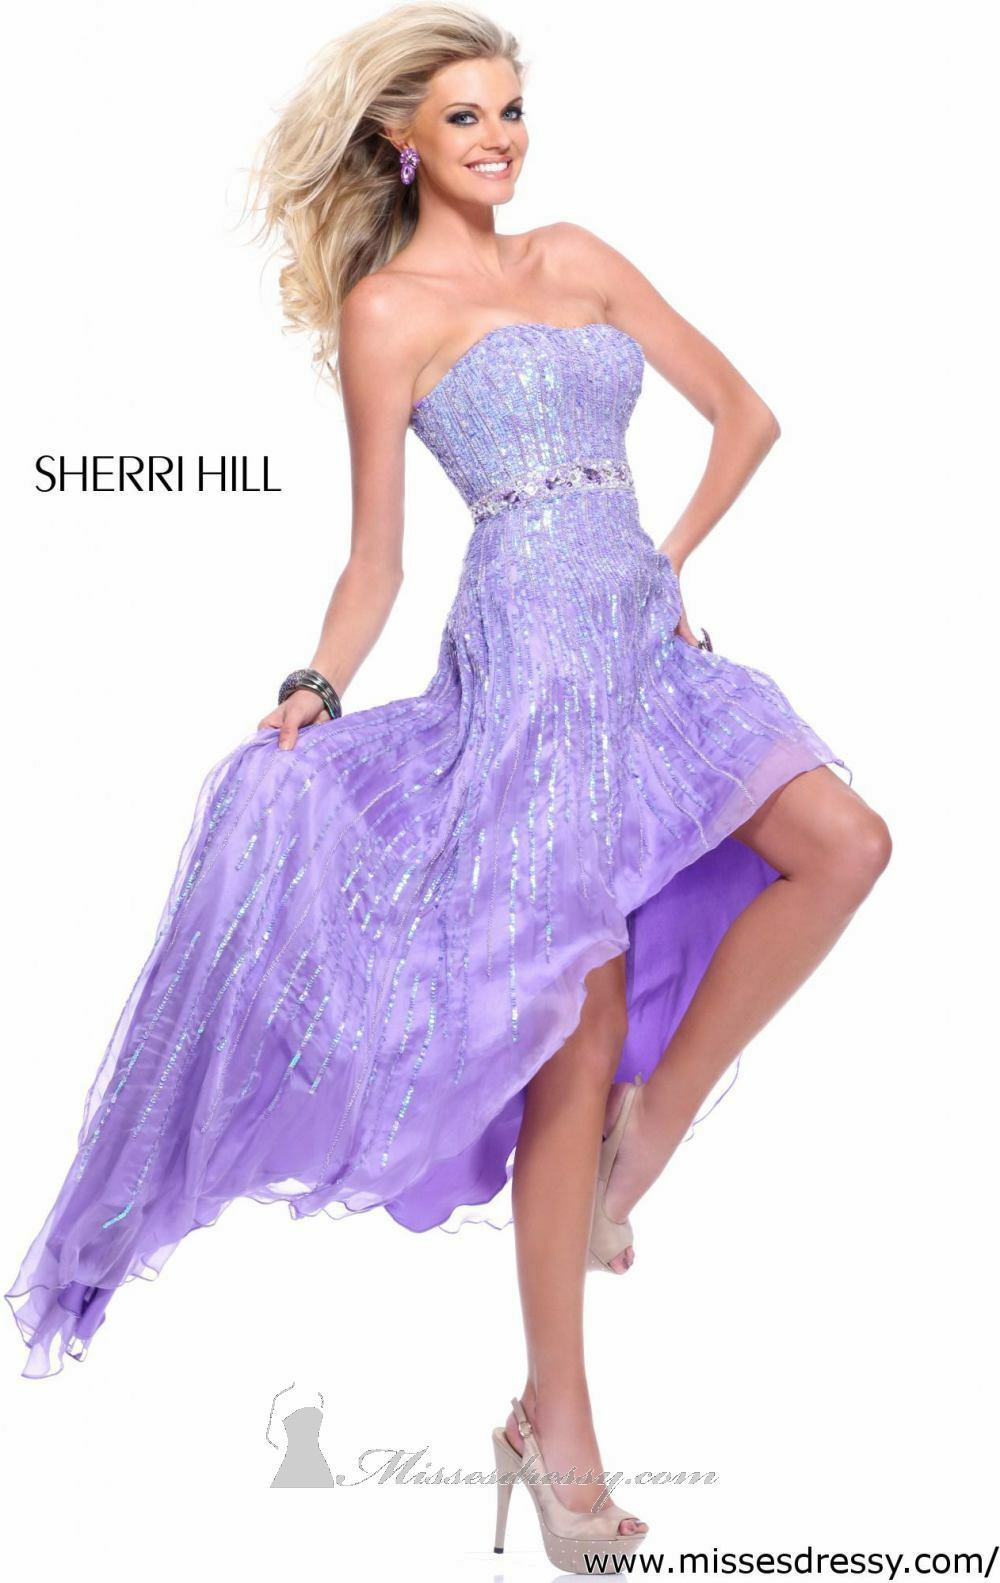 Sherri Hill style 8503 purplec size 4-Prom-Home Coming-Military Ball